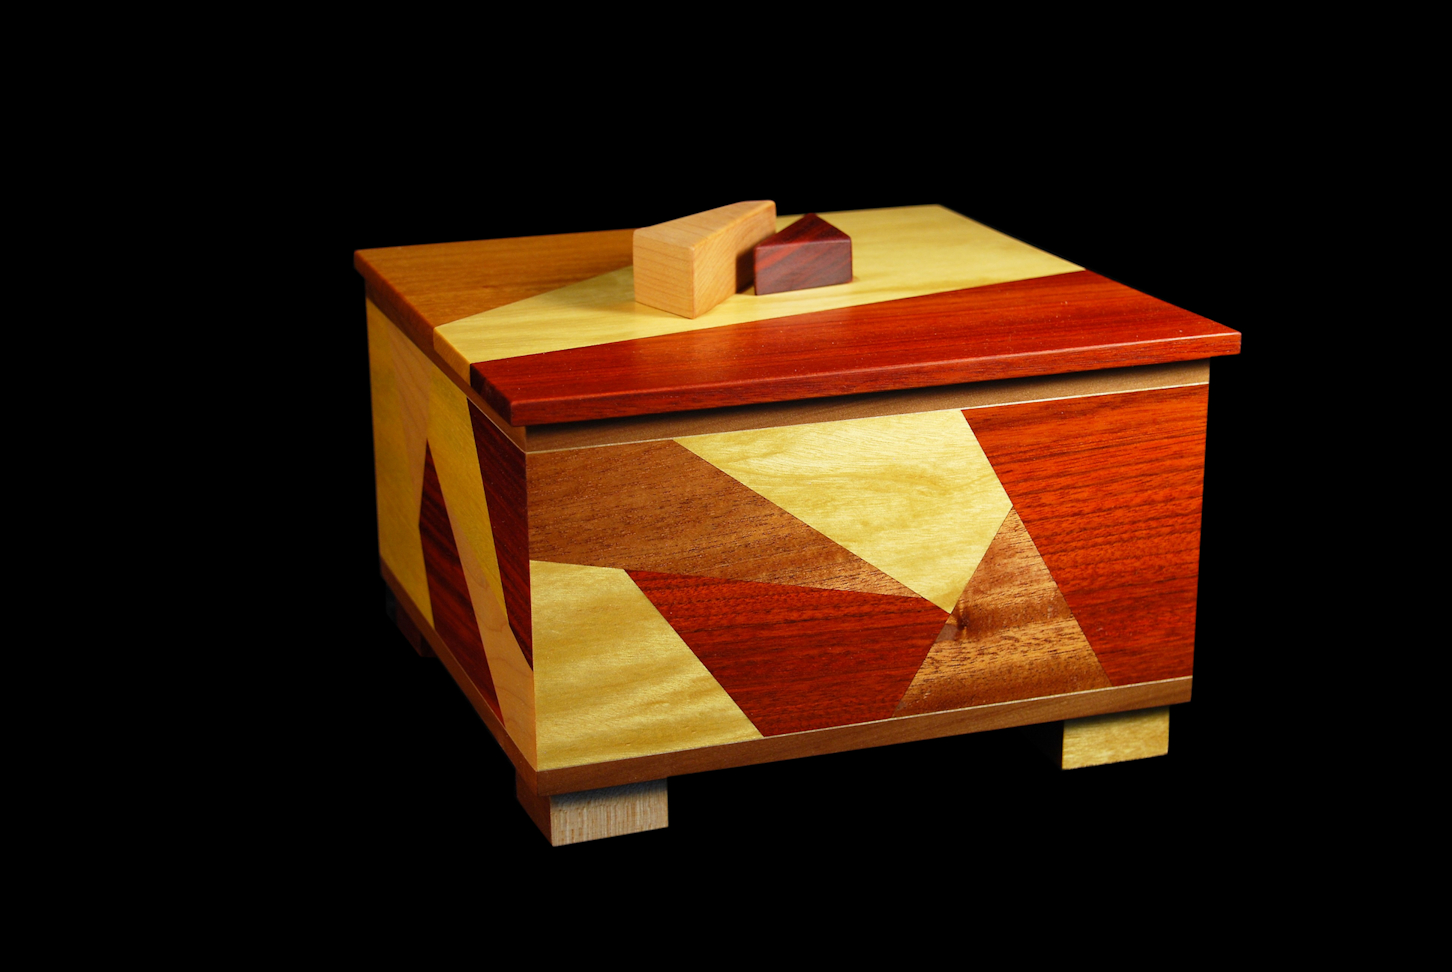 Doug-Pisik-_Shatter-Box-I_-10_-x-10_-x-8_-Yellowheart-Bloodwood-Mahogany-Maple